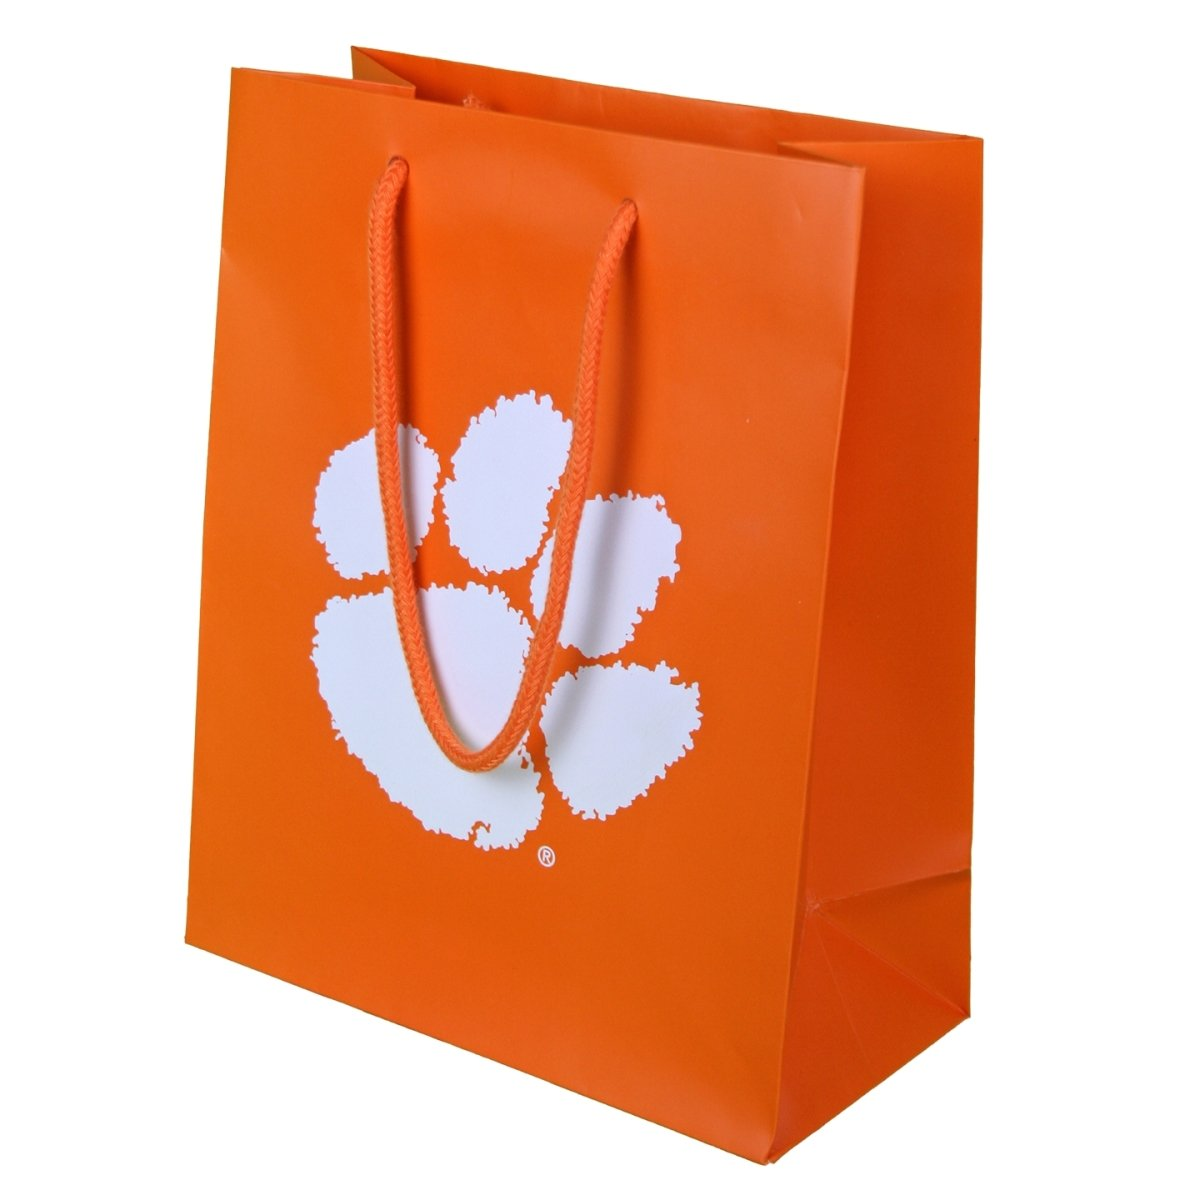 Gift Tote Medium Orange Matte With White Paw - Mr. Knickerbocker